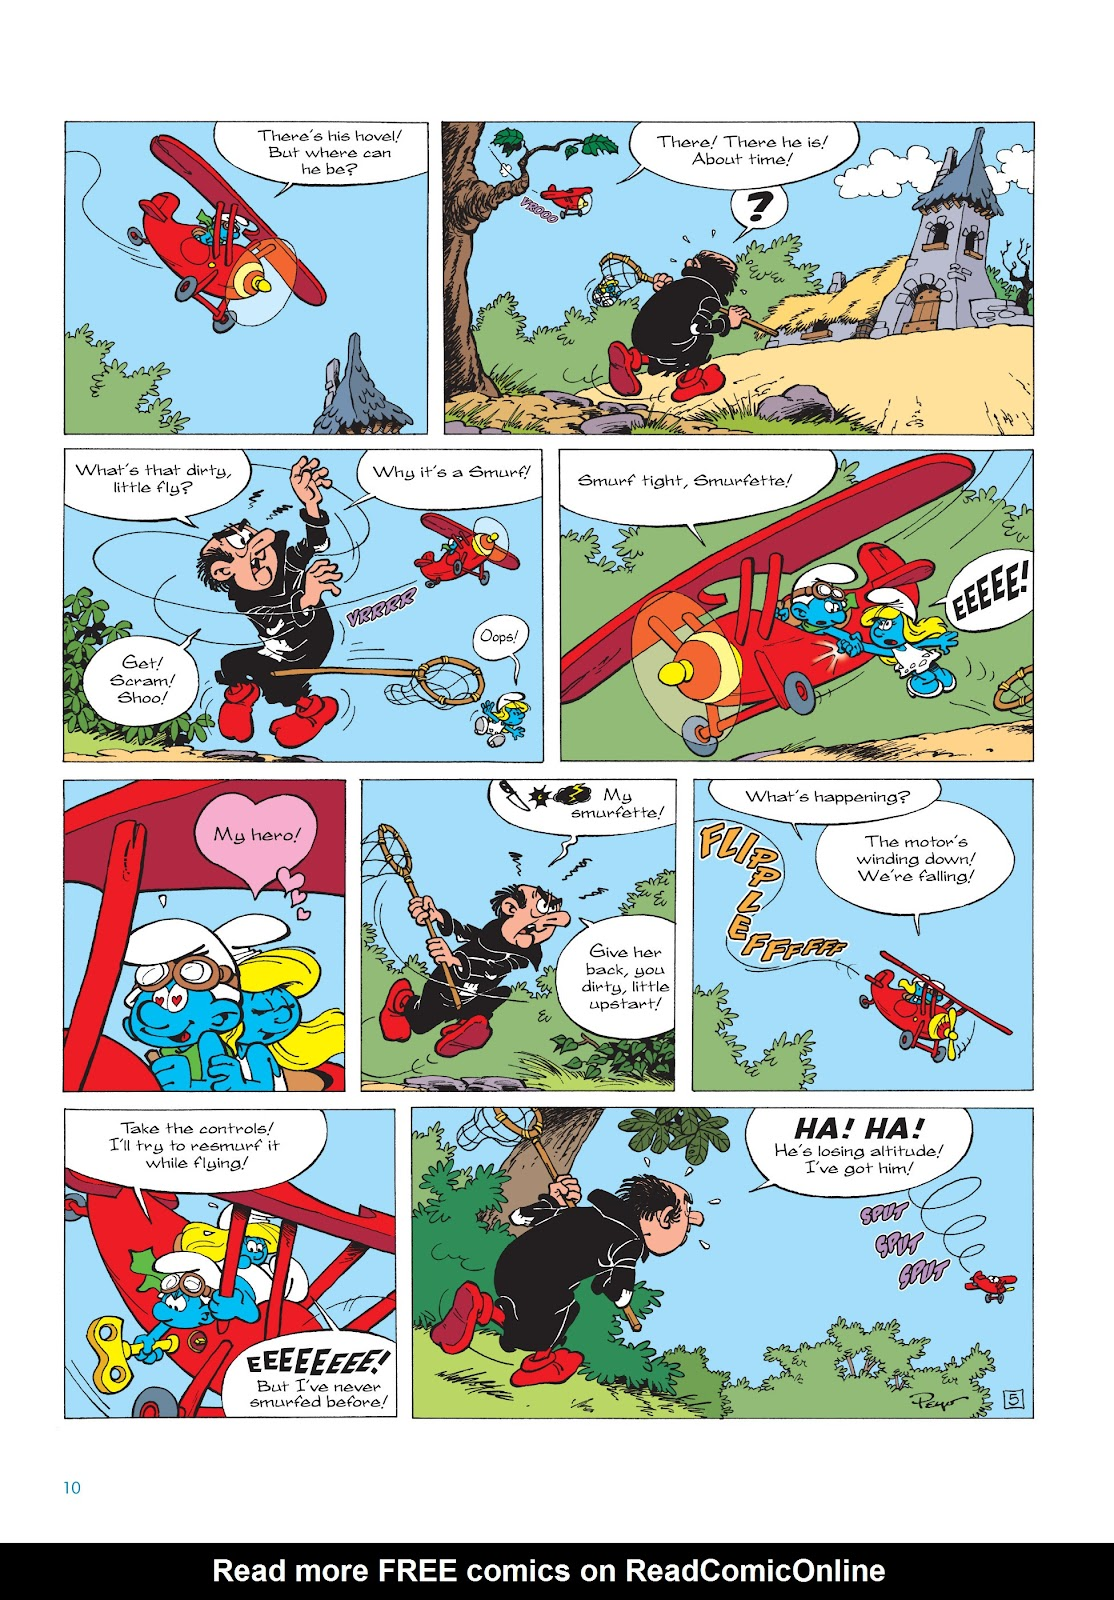 Read online The Smurfs comic -  Issue #16 - 11